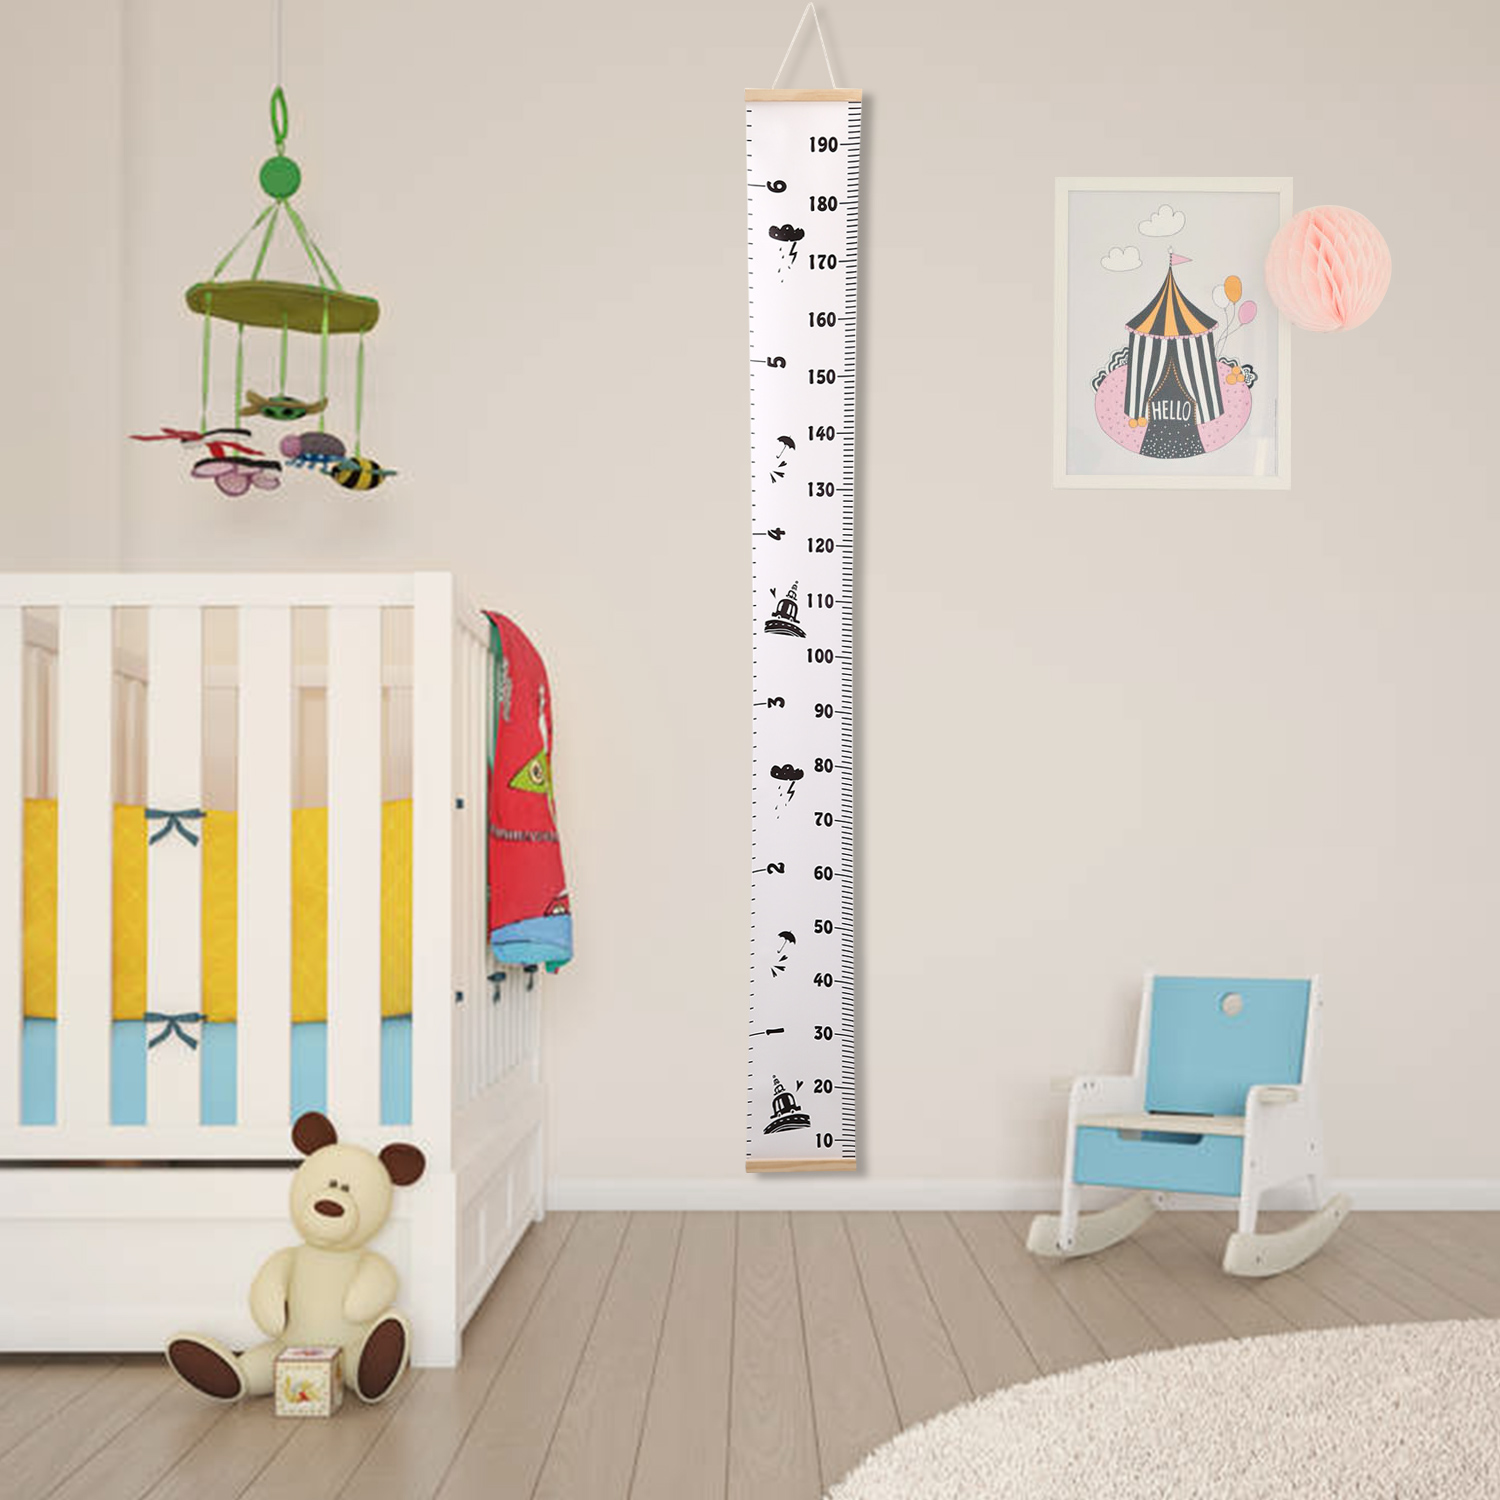 Wall hanging ruler kids baby height growth chart nursery child wall hanging ruler kids baby height growth chart geenschuldenfo Gallery